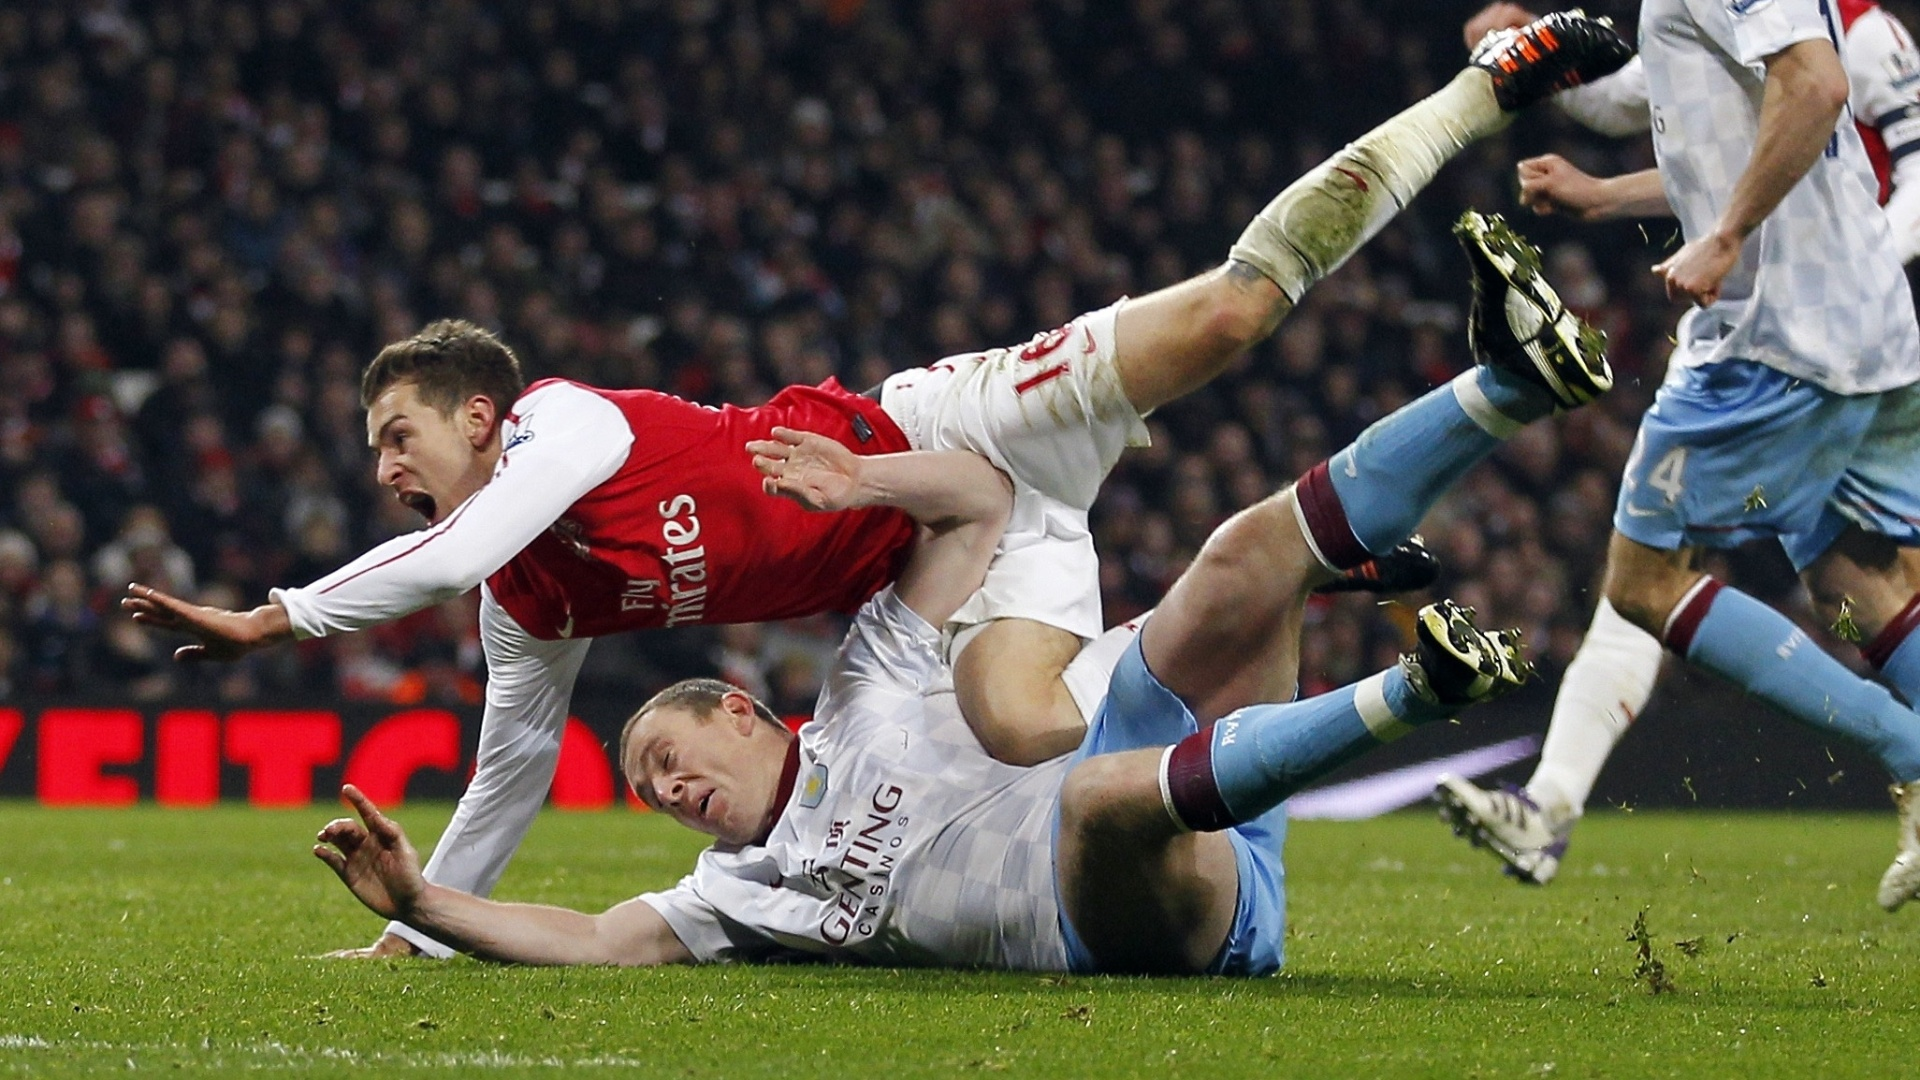 Aaron Ramsey, do Arsenal, sofre pênalti cometido por Richard Dunne, do Aston Villa